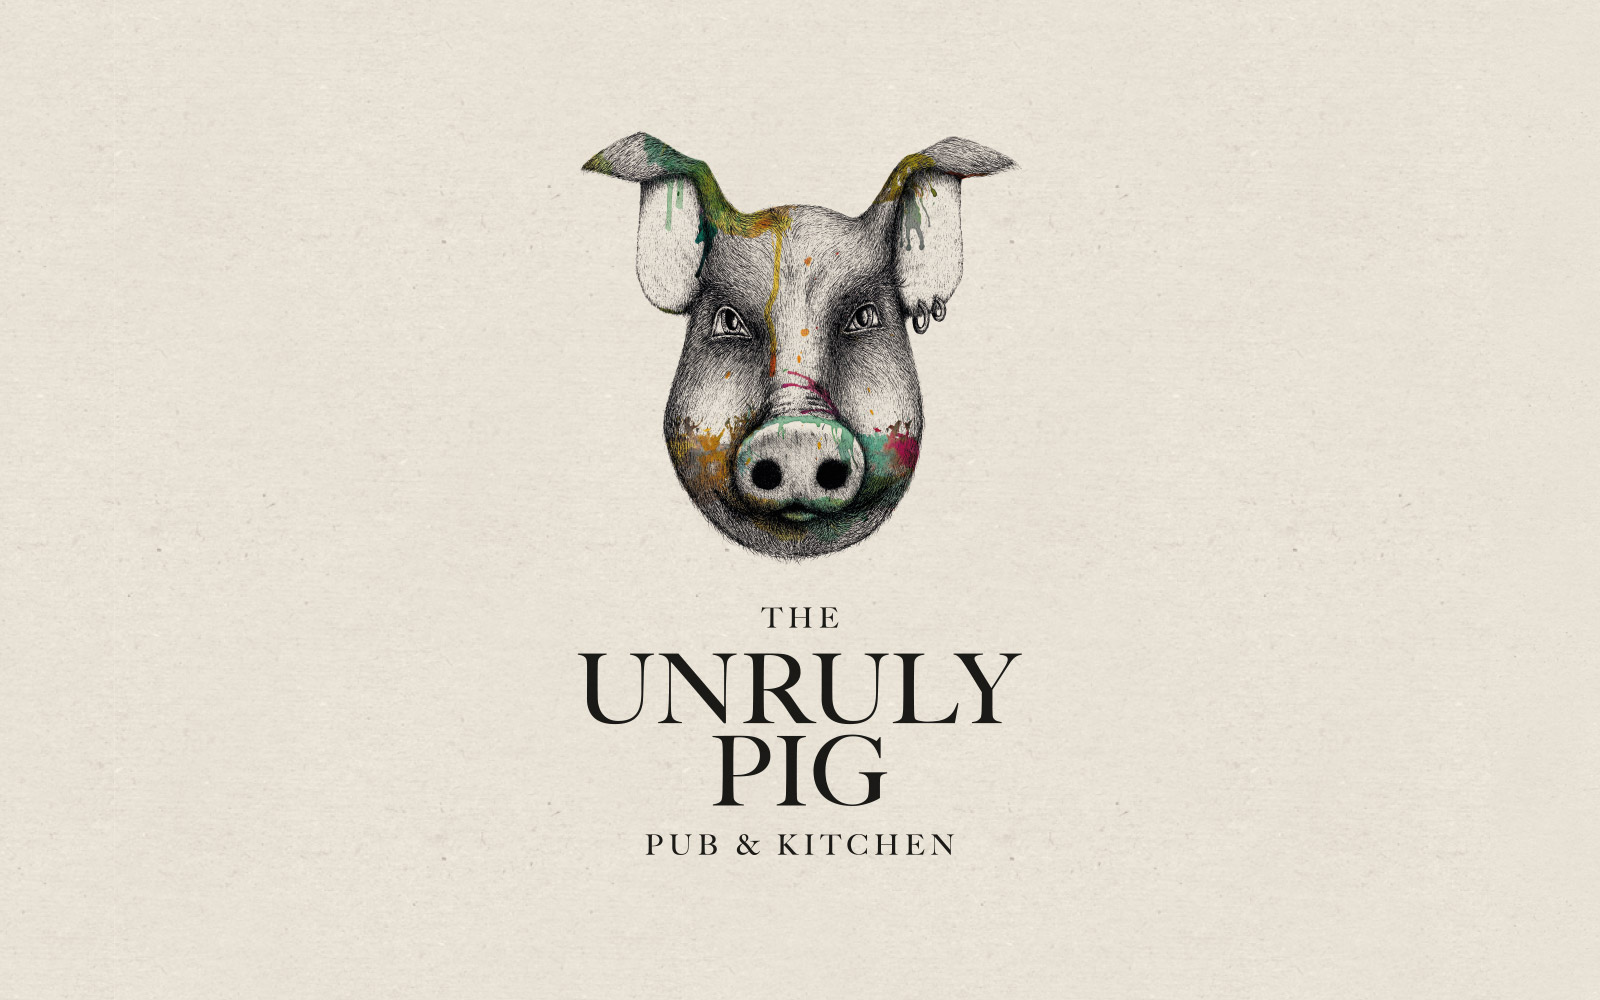 The Unruly Pig logo